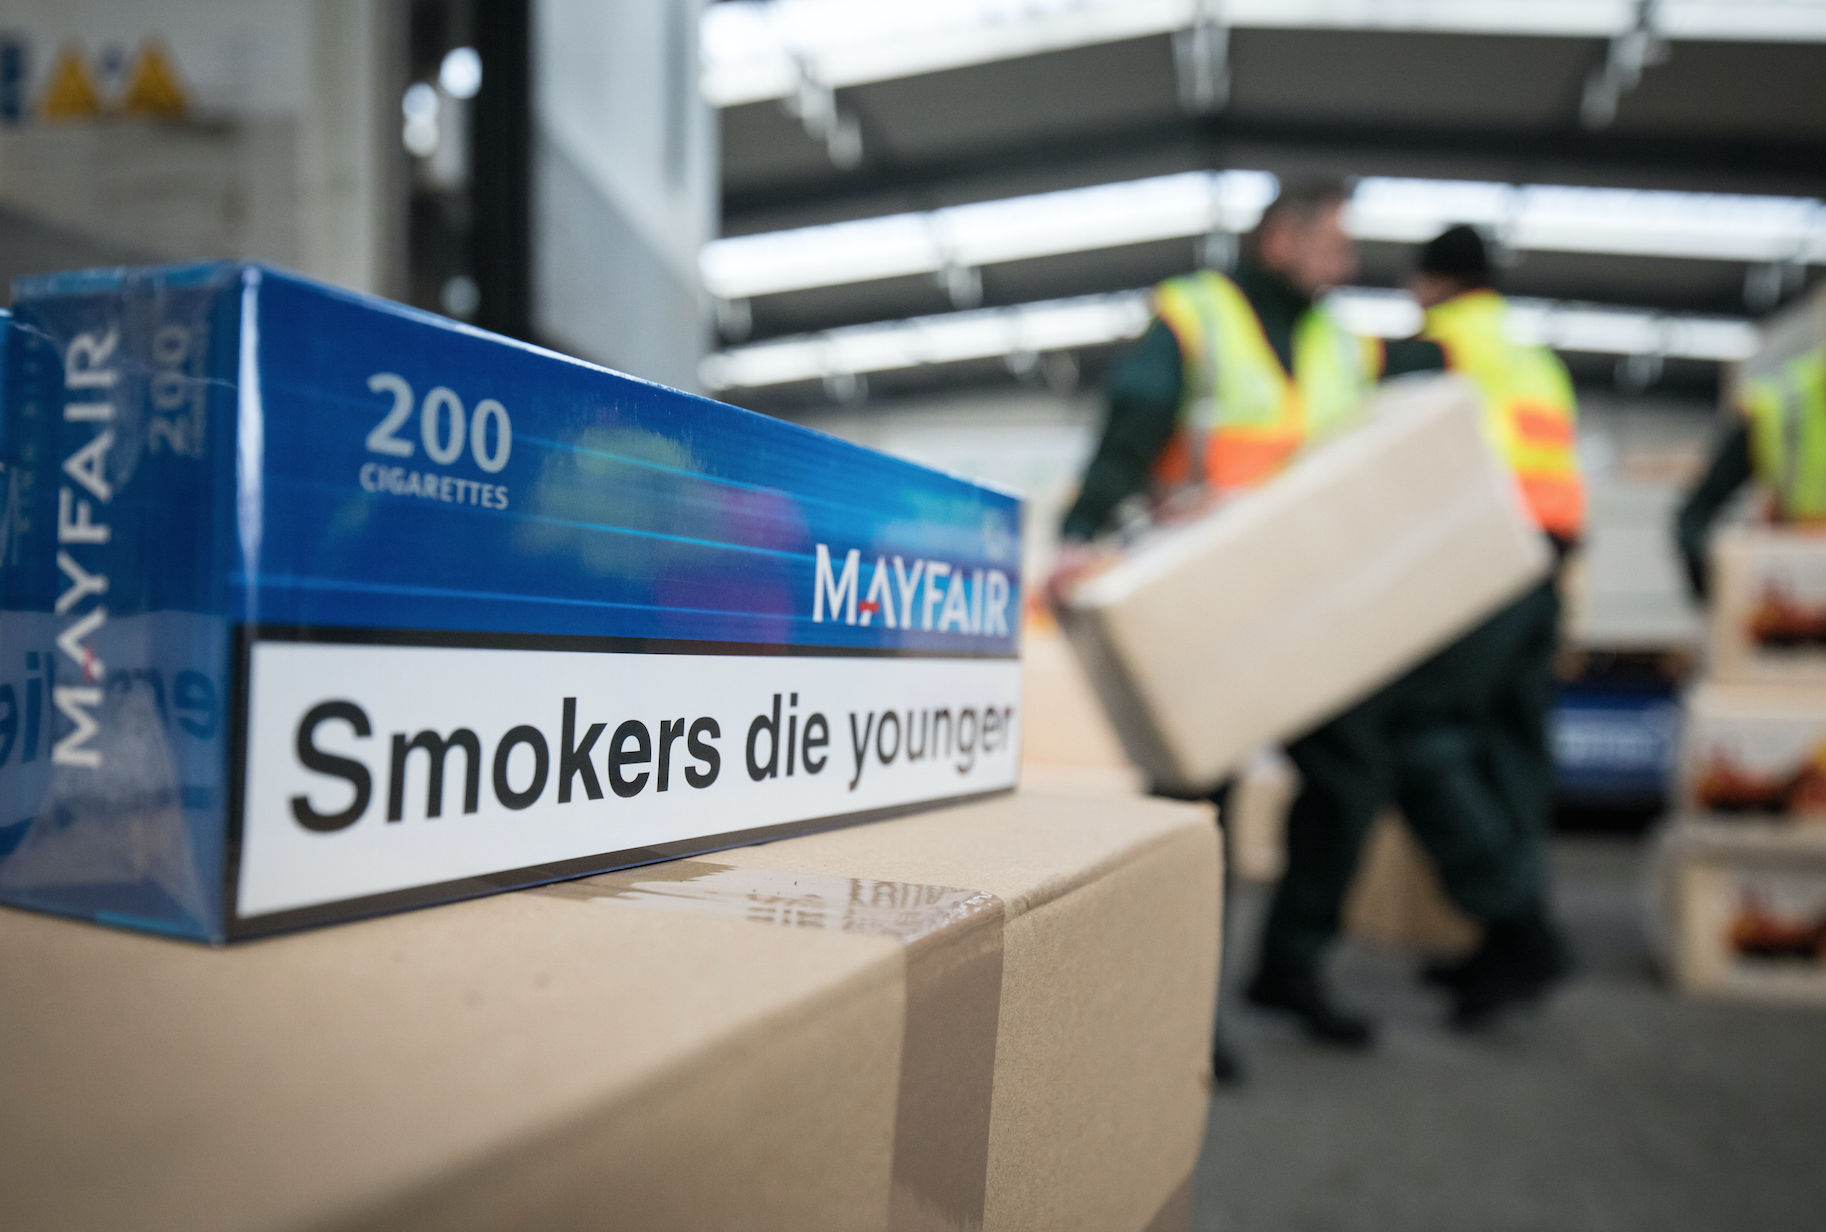 FDA takes pivotal public health step to dramatically reduce smoking rates